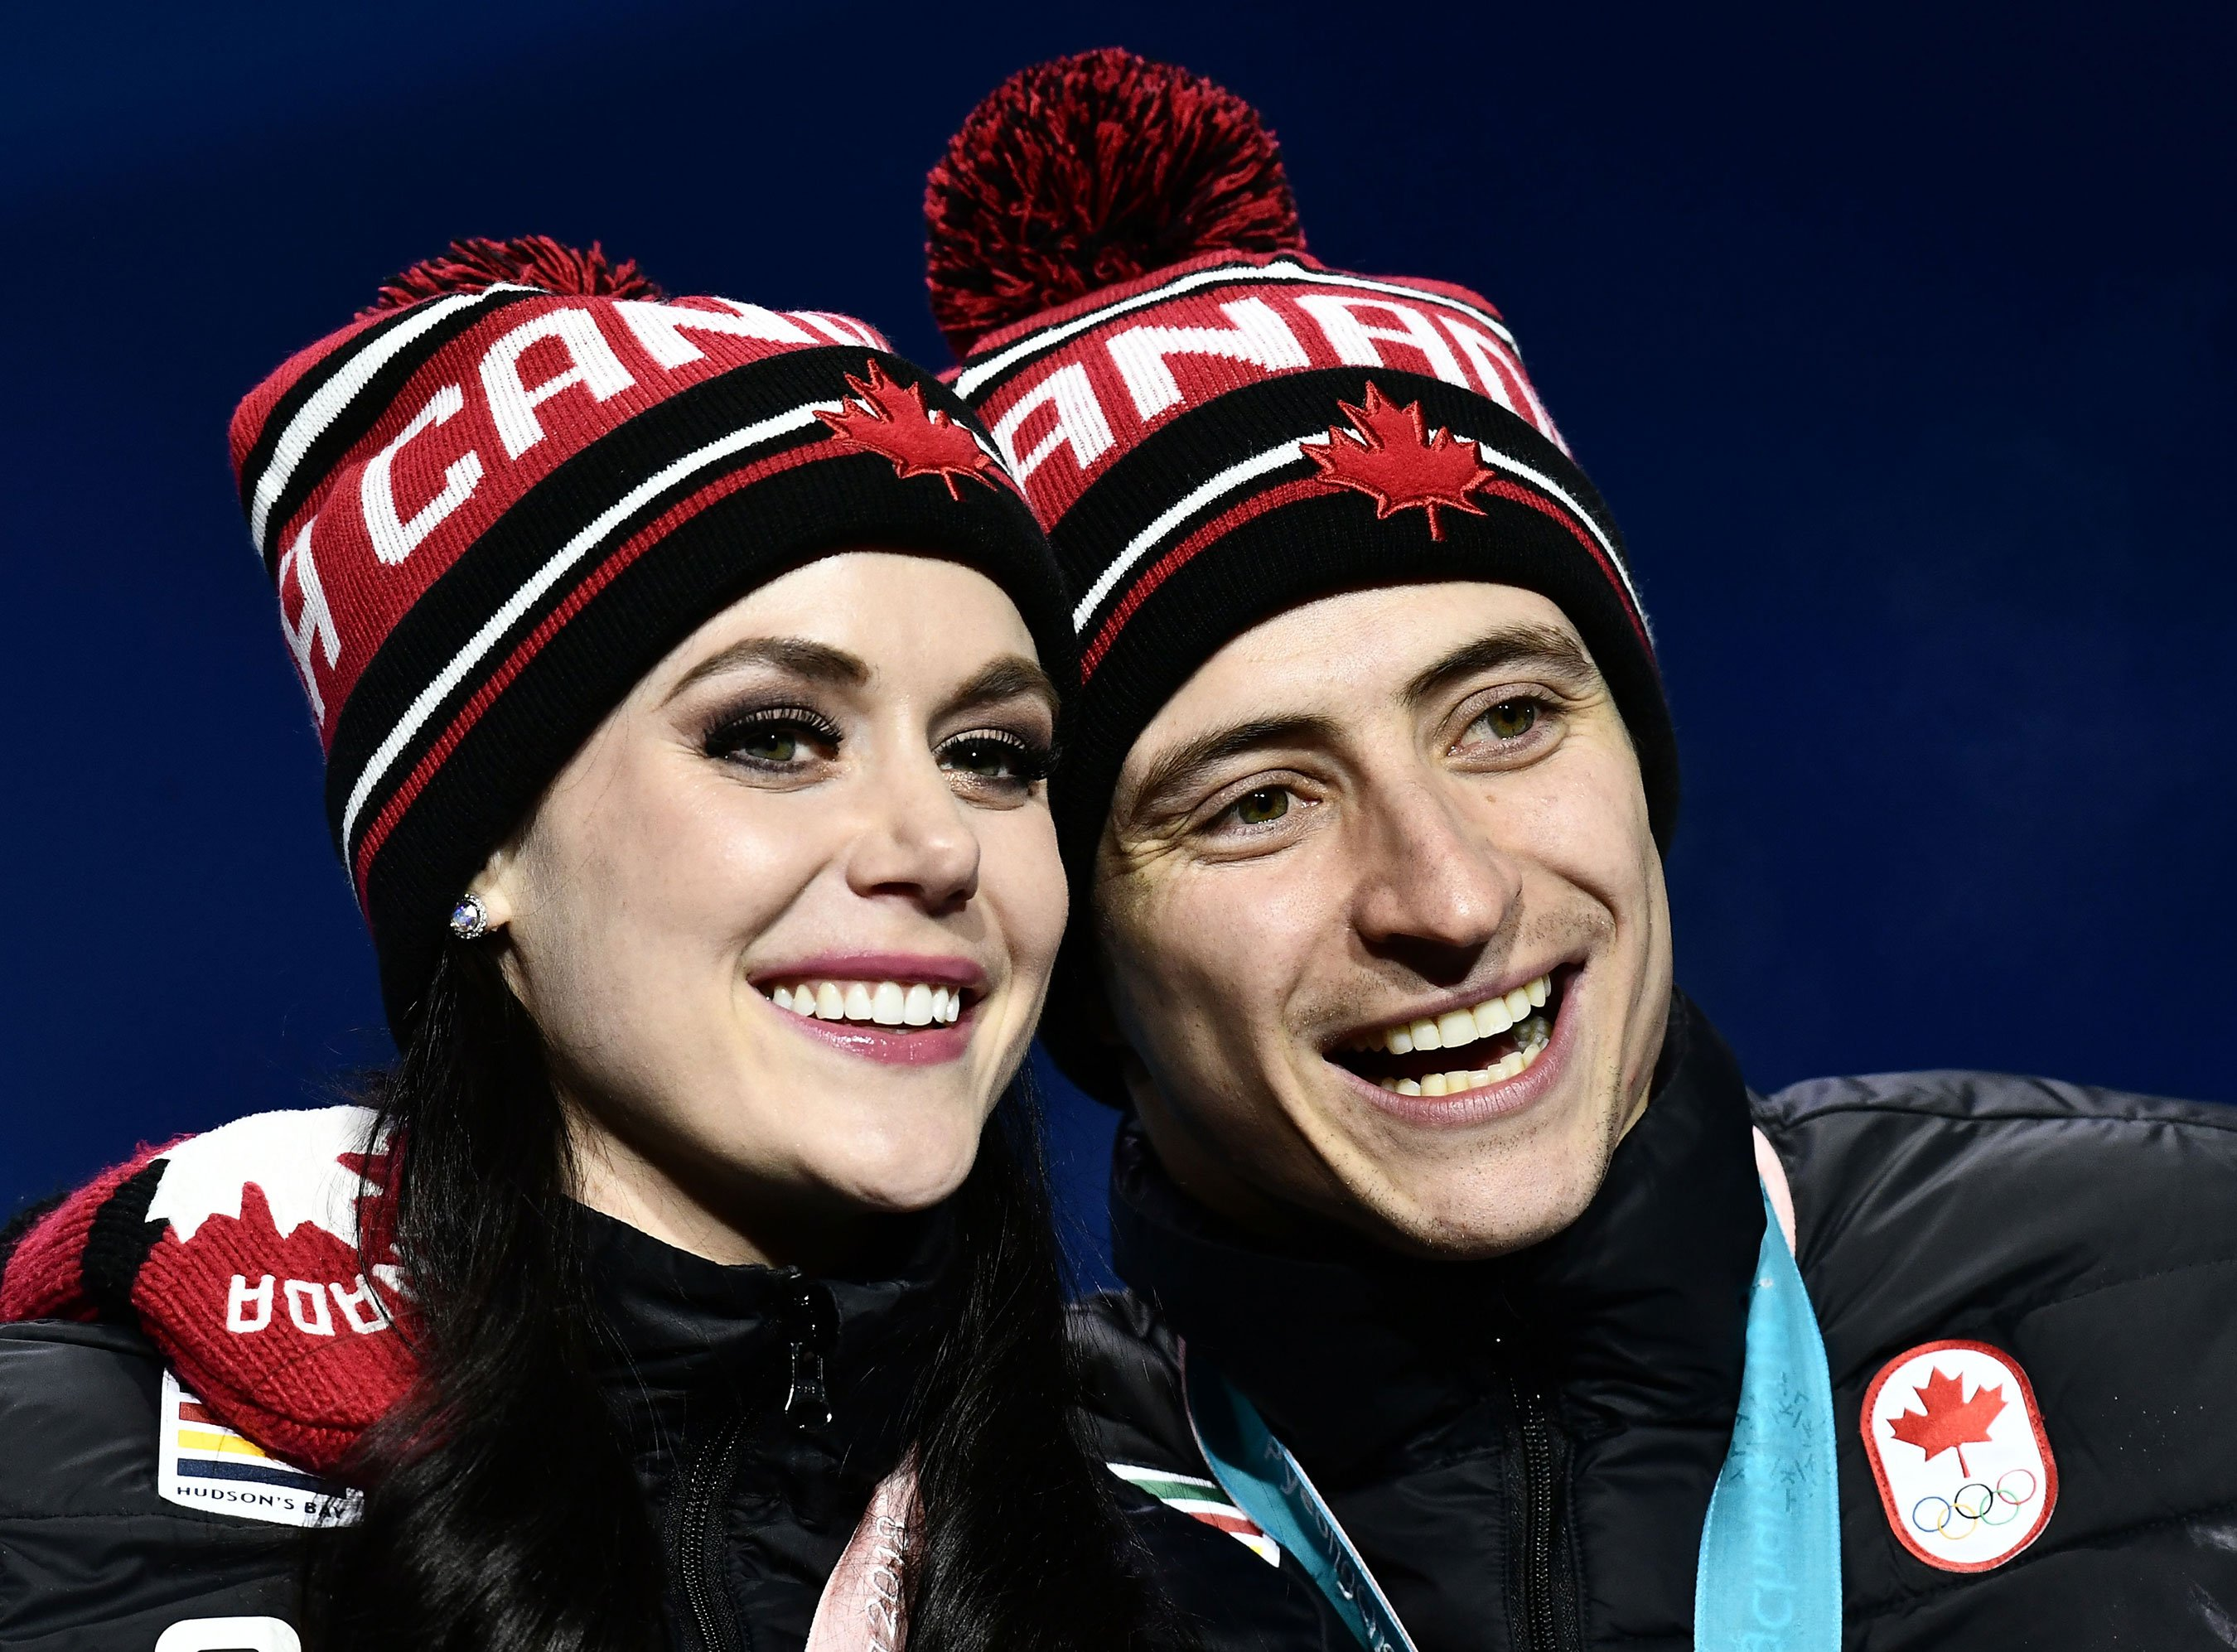 Canadian ice dancers Tessa Virtue and Scott Moir on why they're 'protective' of close bond